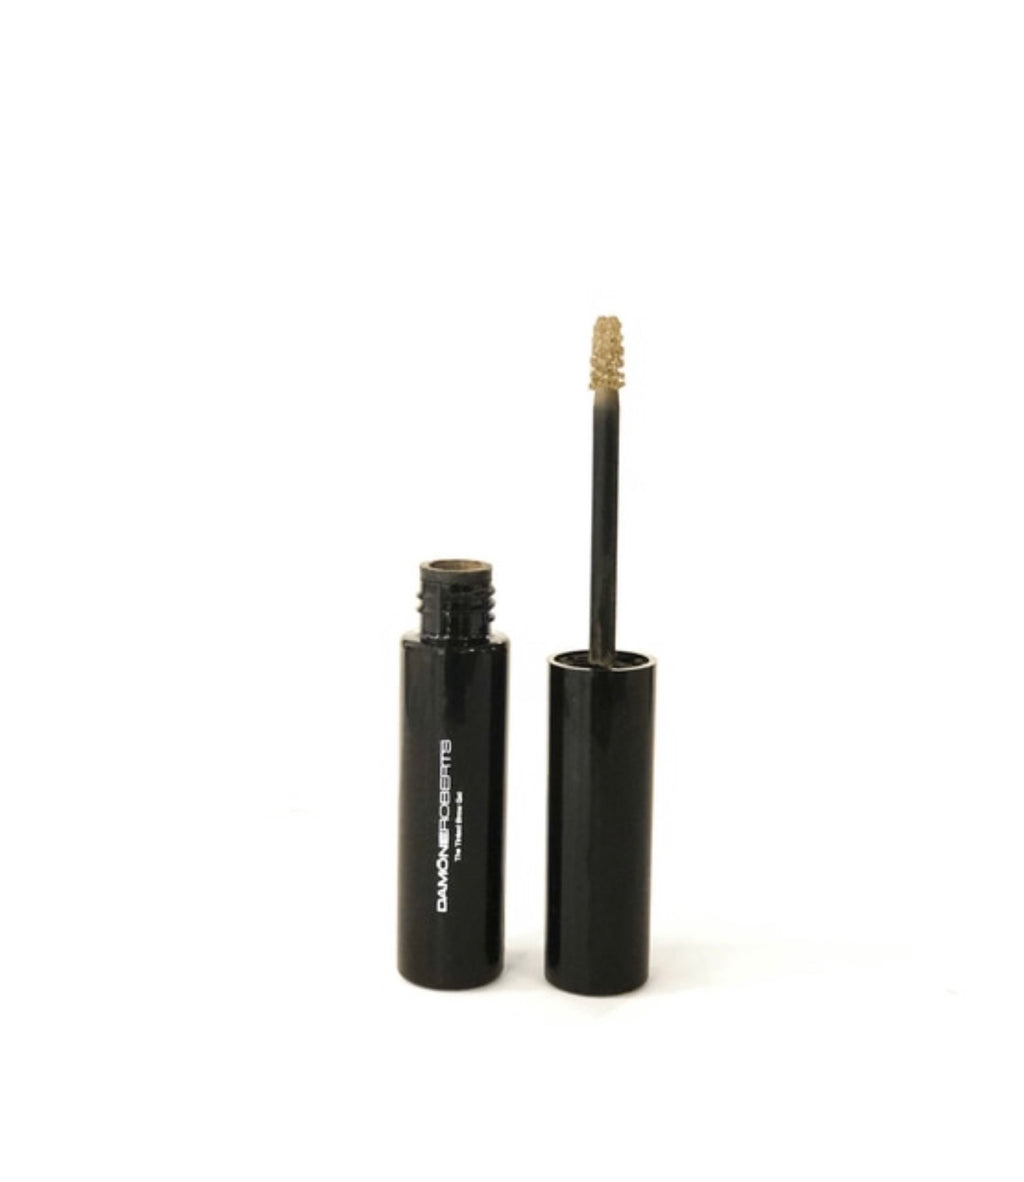 Damone Roberts Goldie Fawn Tinted Eyebrow Gel (Blonde with Subtle Shimmer)